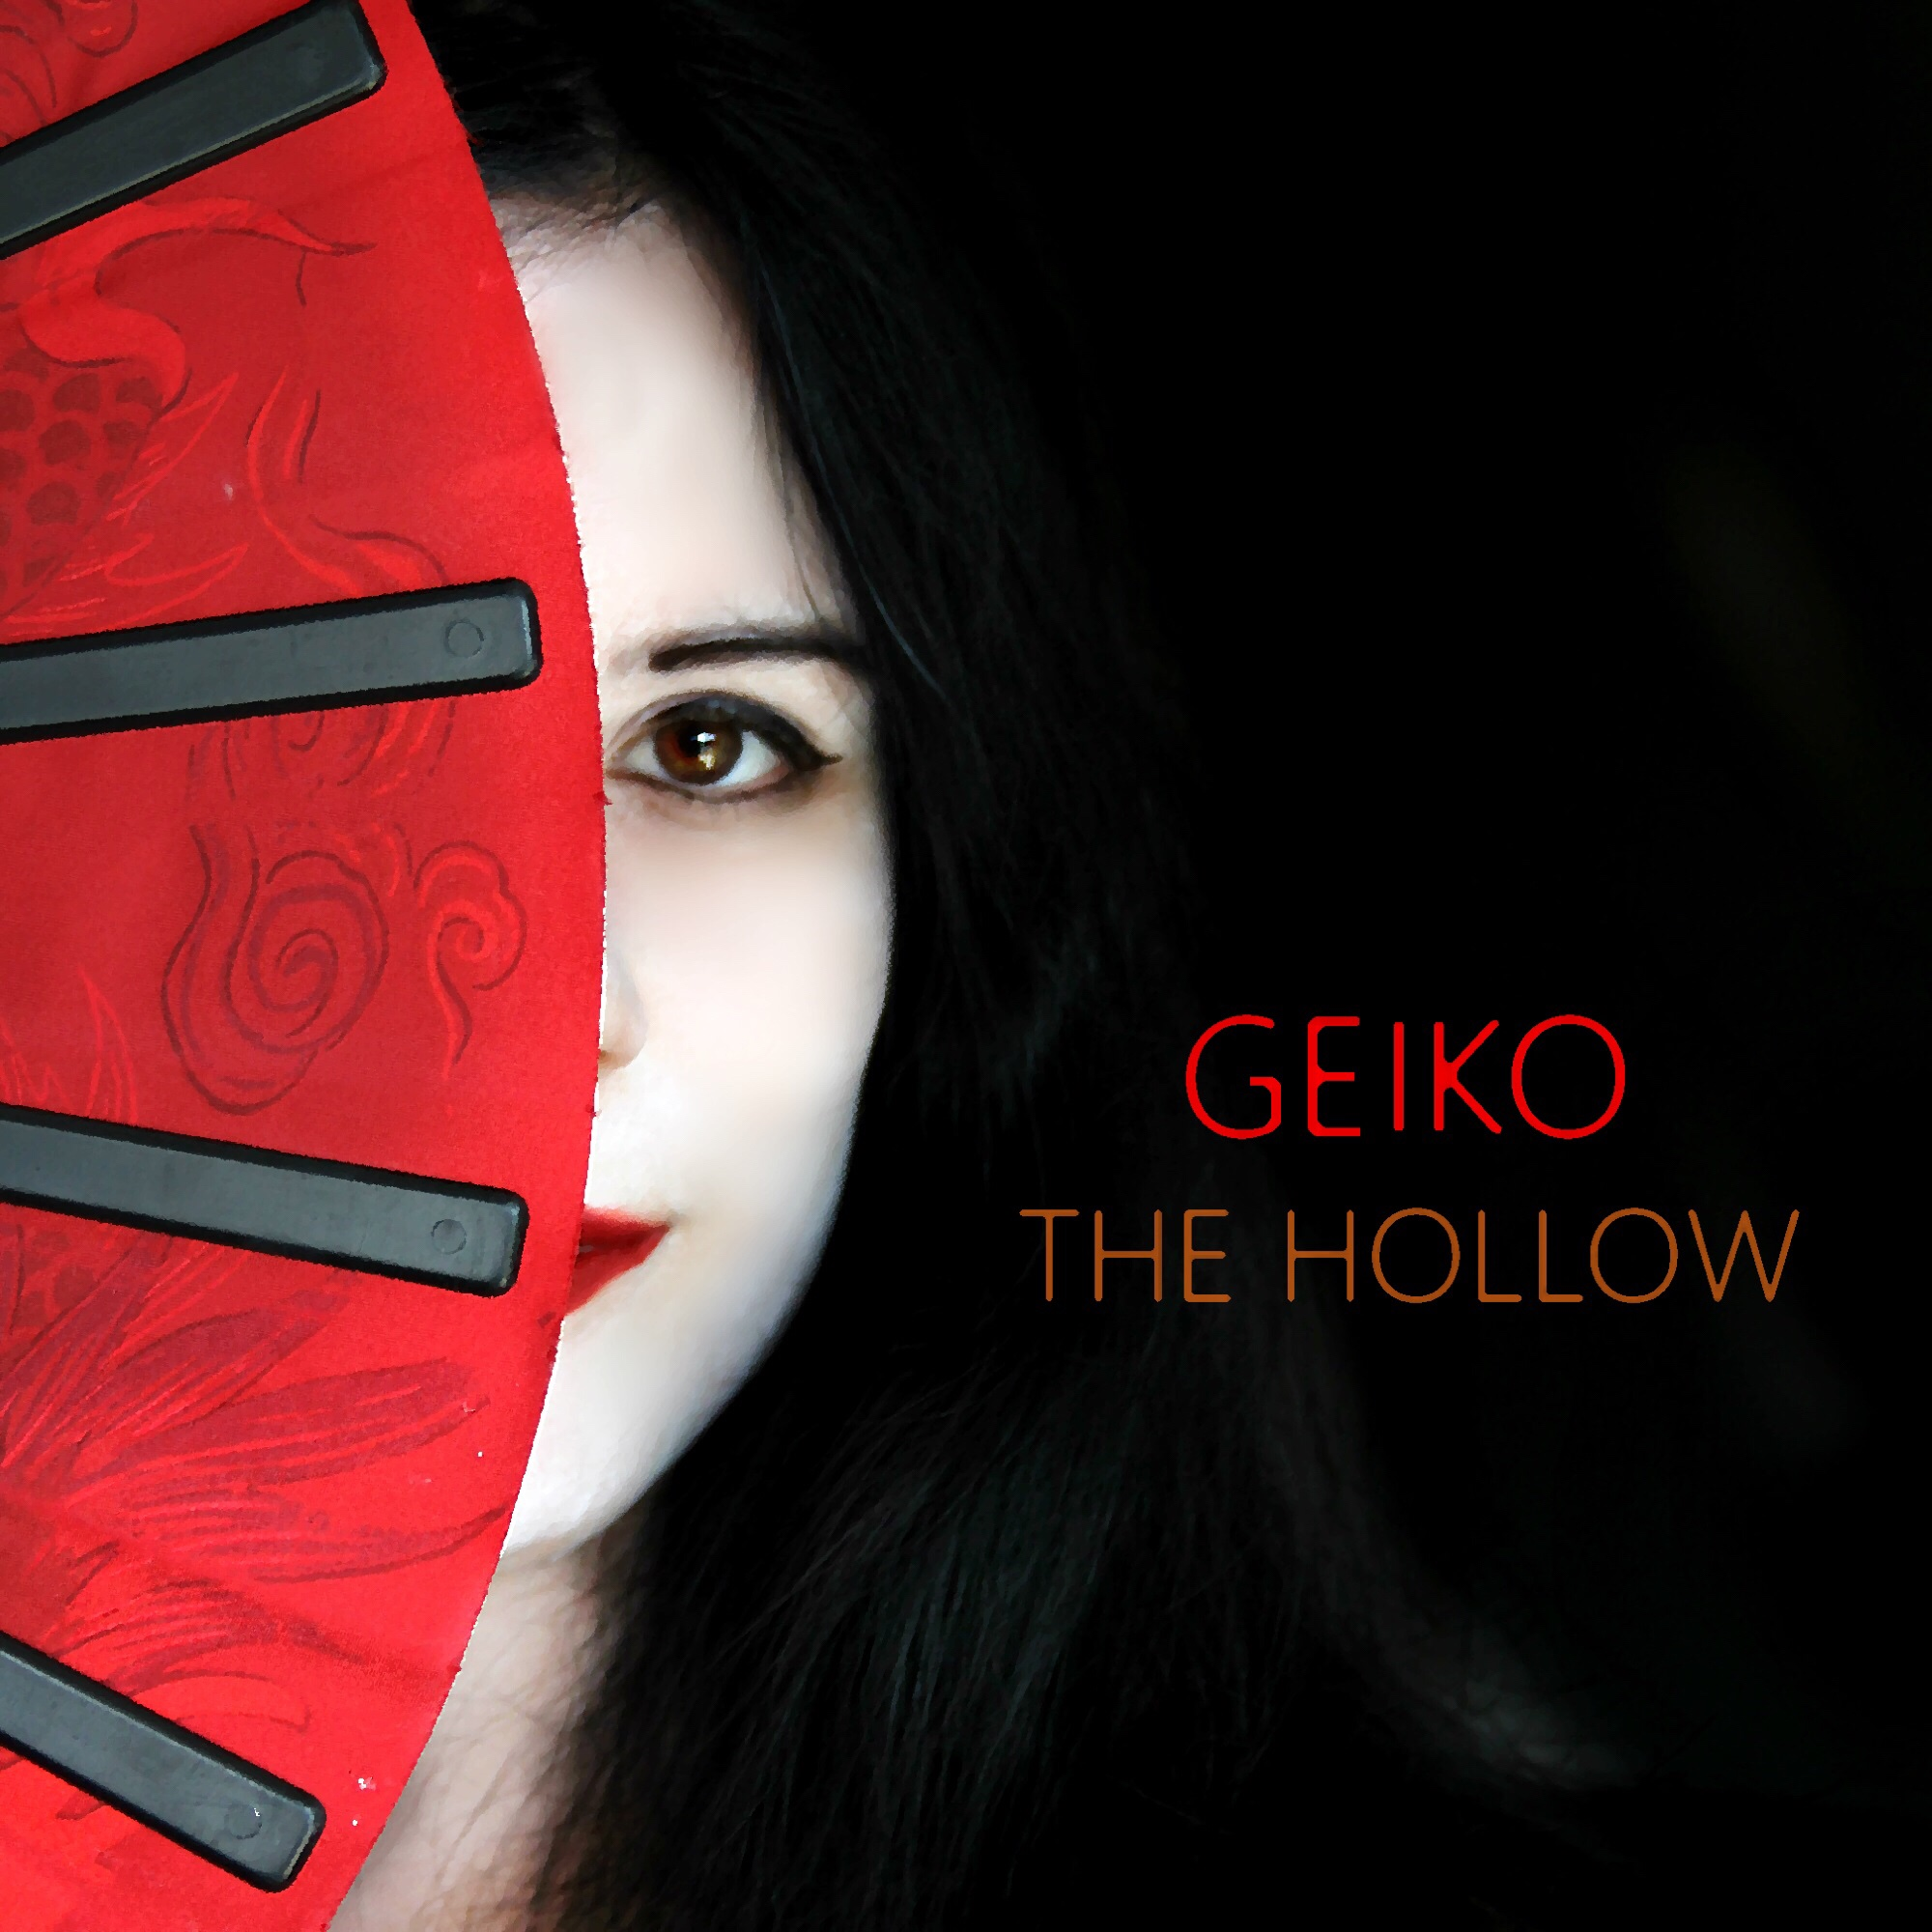 Geiko - The Hollow